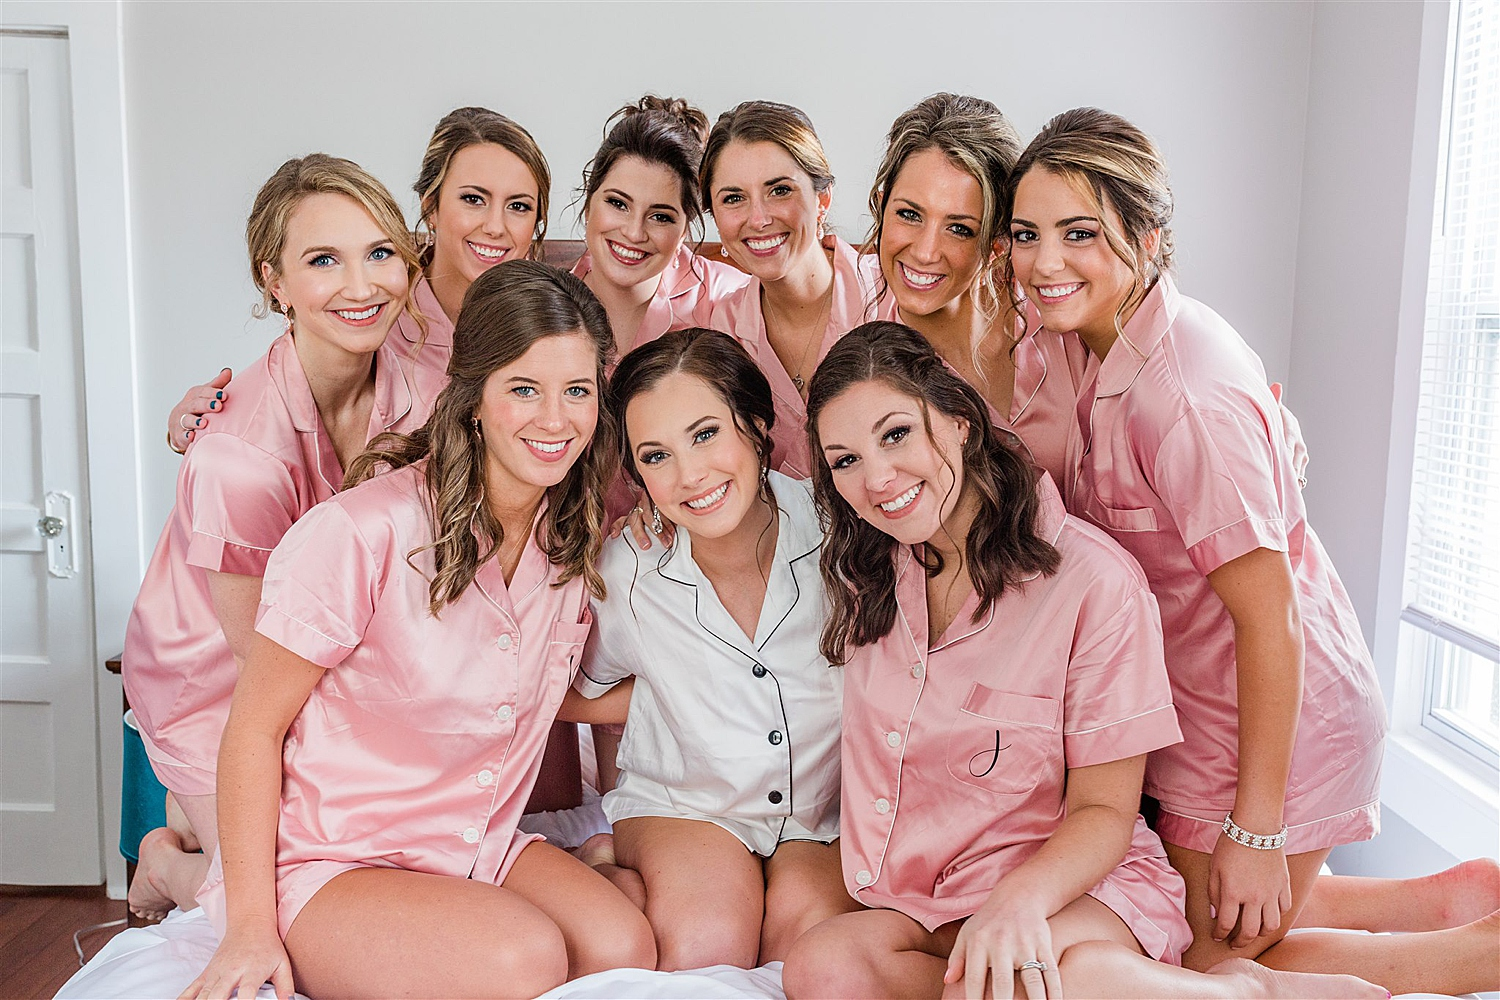 Bride and Bridesmaids smiling in robes